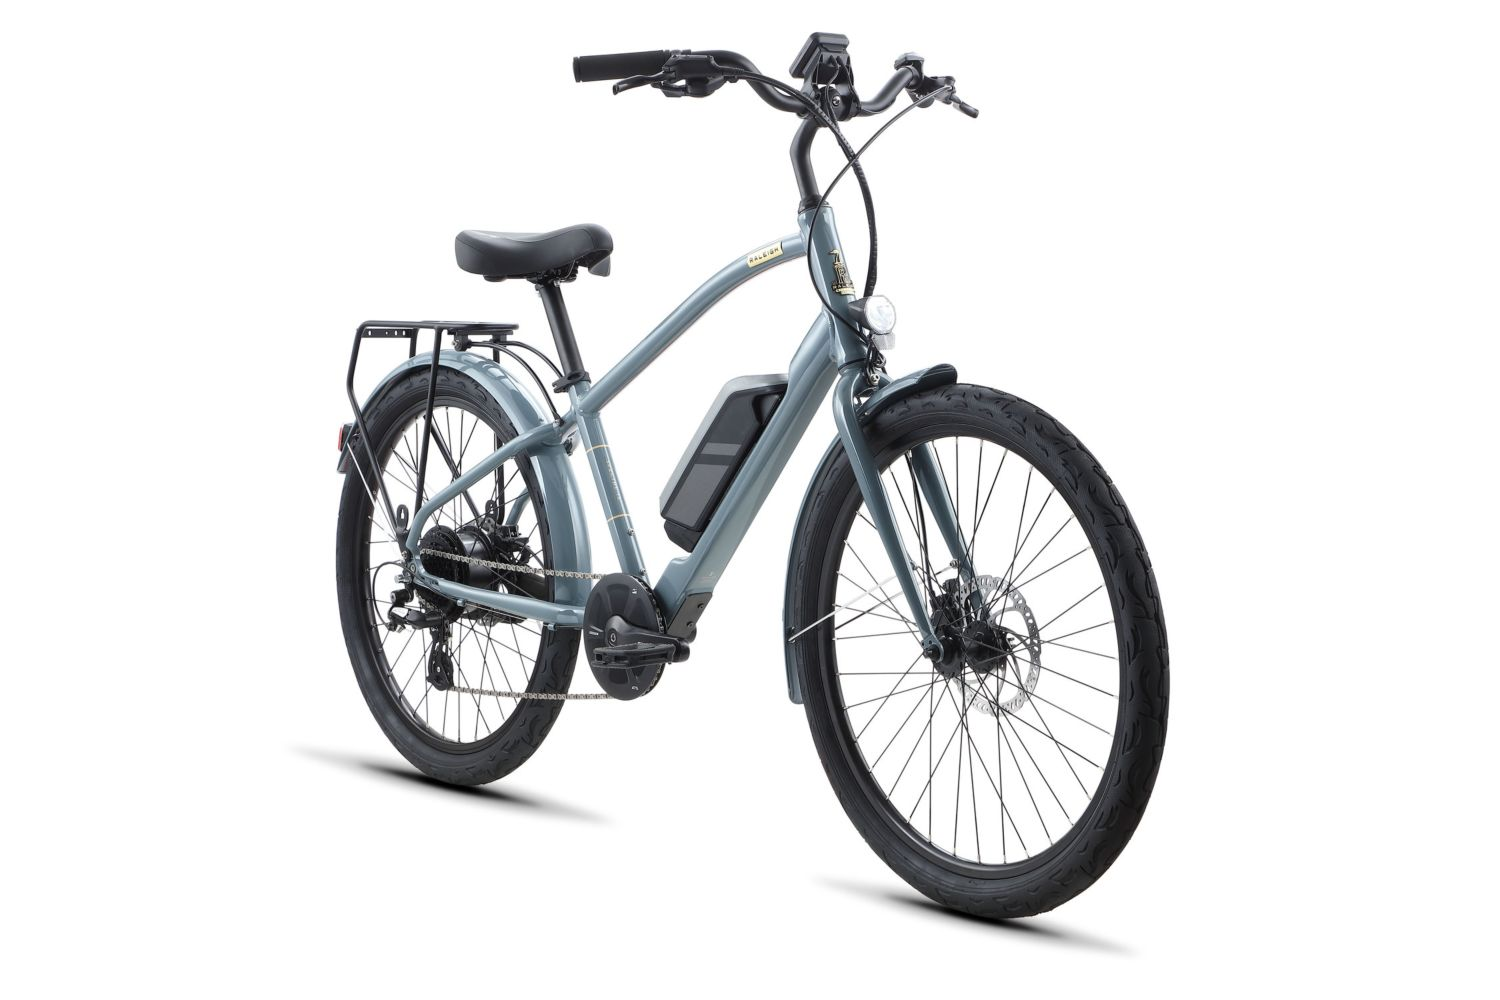 Raleigh Special Ie High Step Electric Bike In Grey